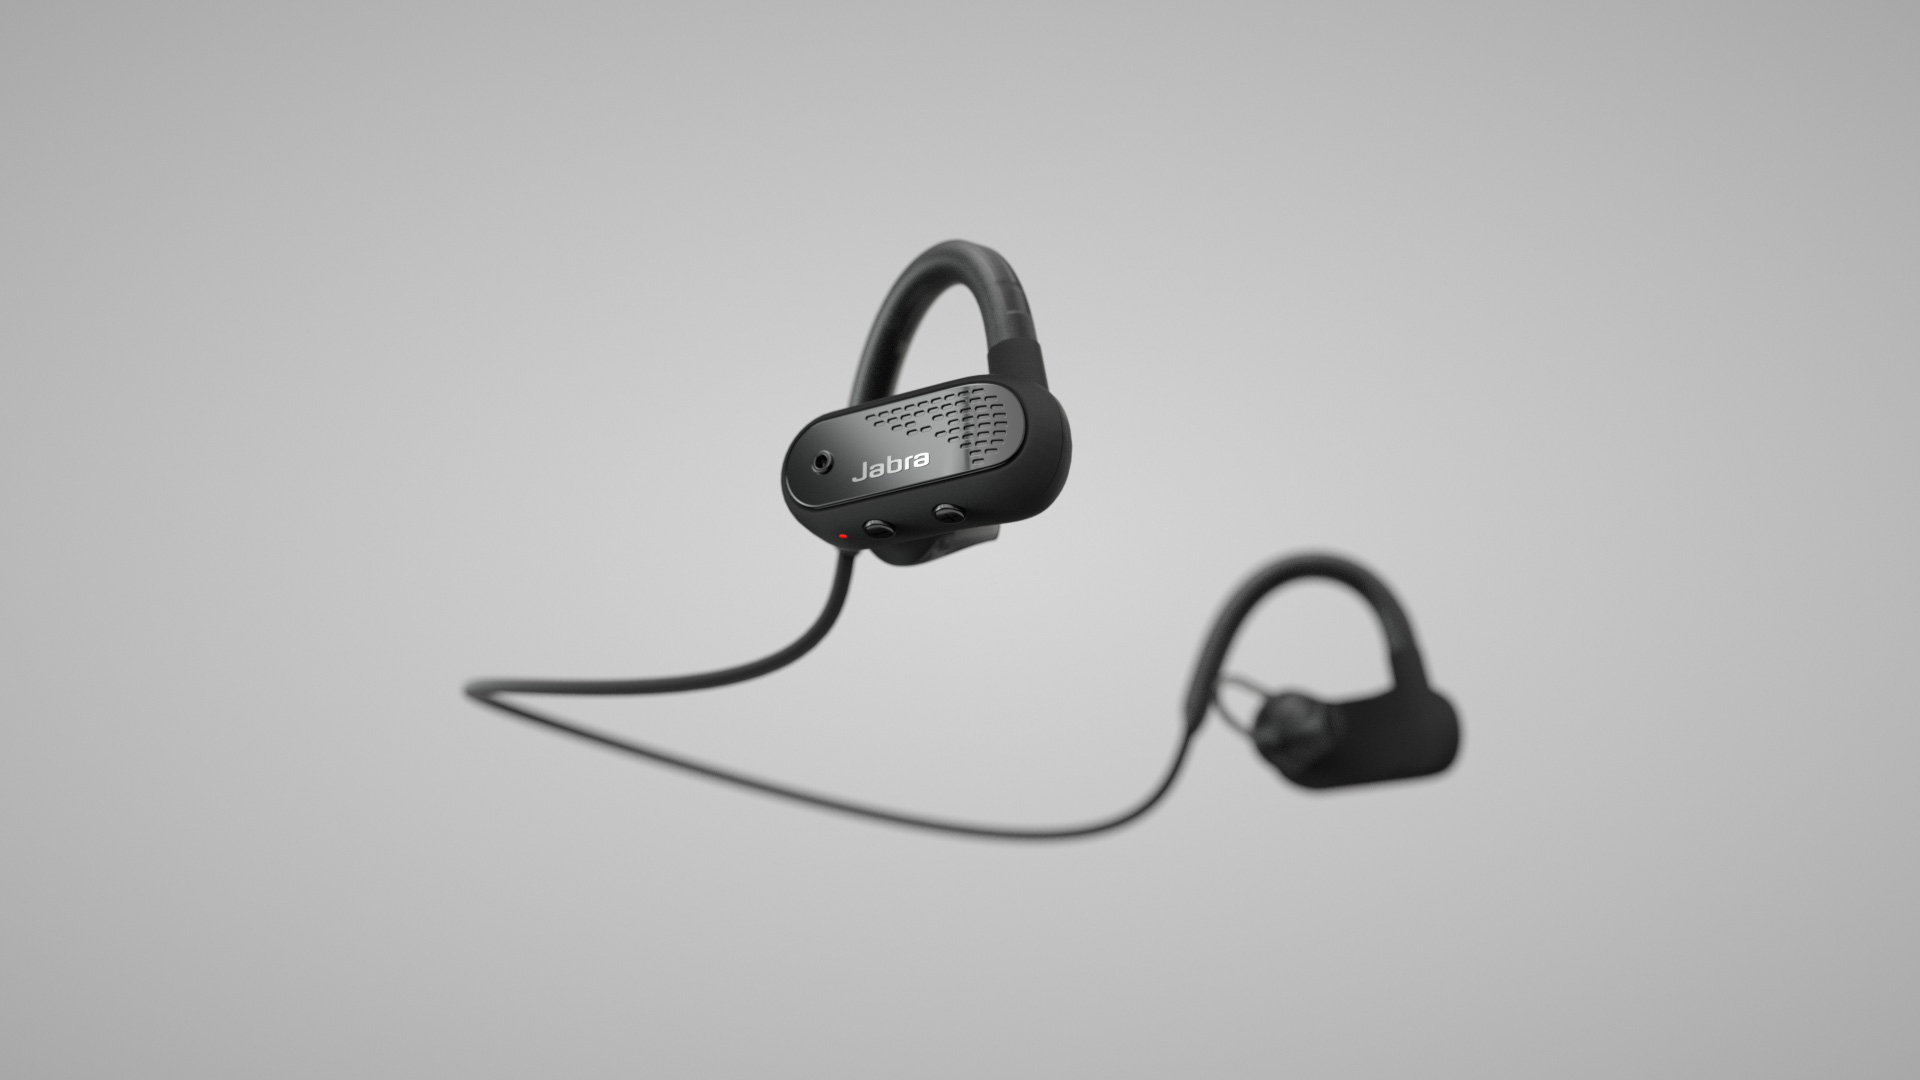 jabra-product-render-06